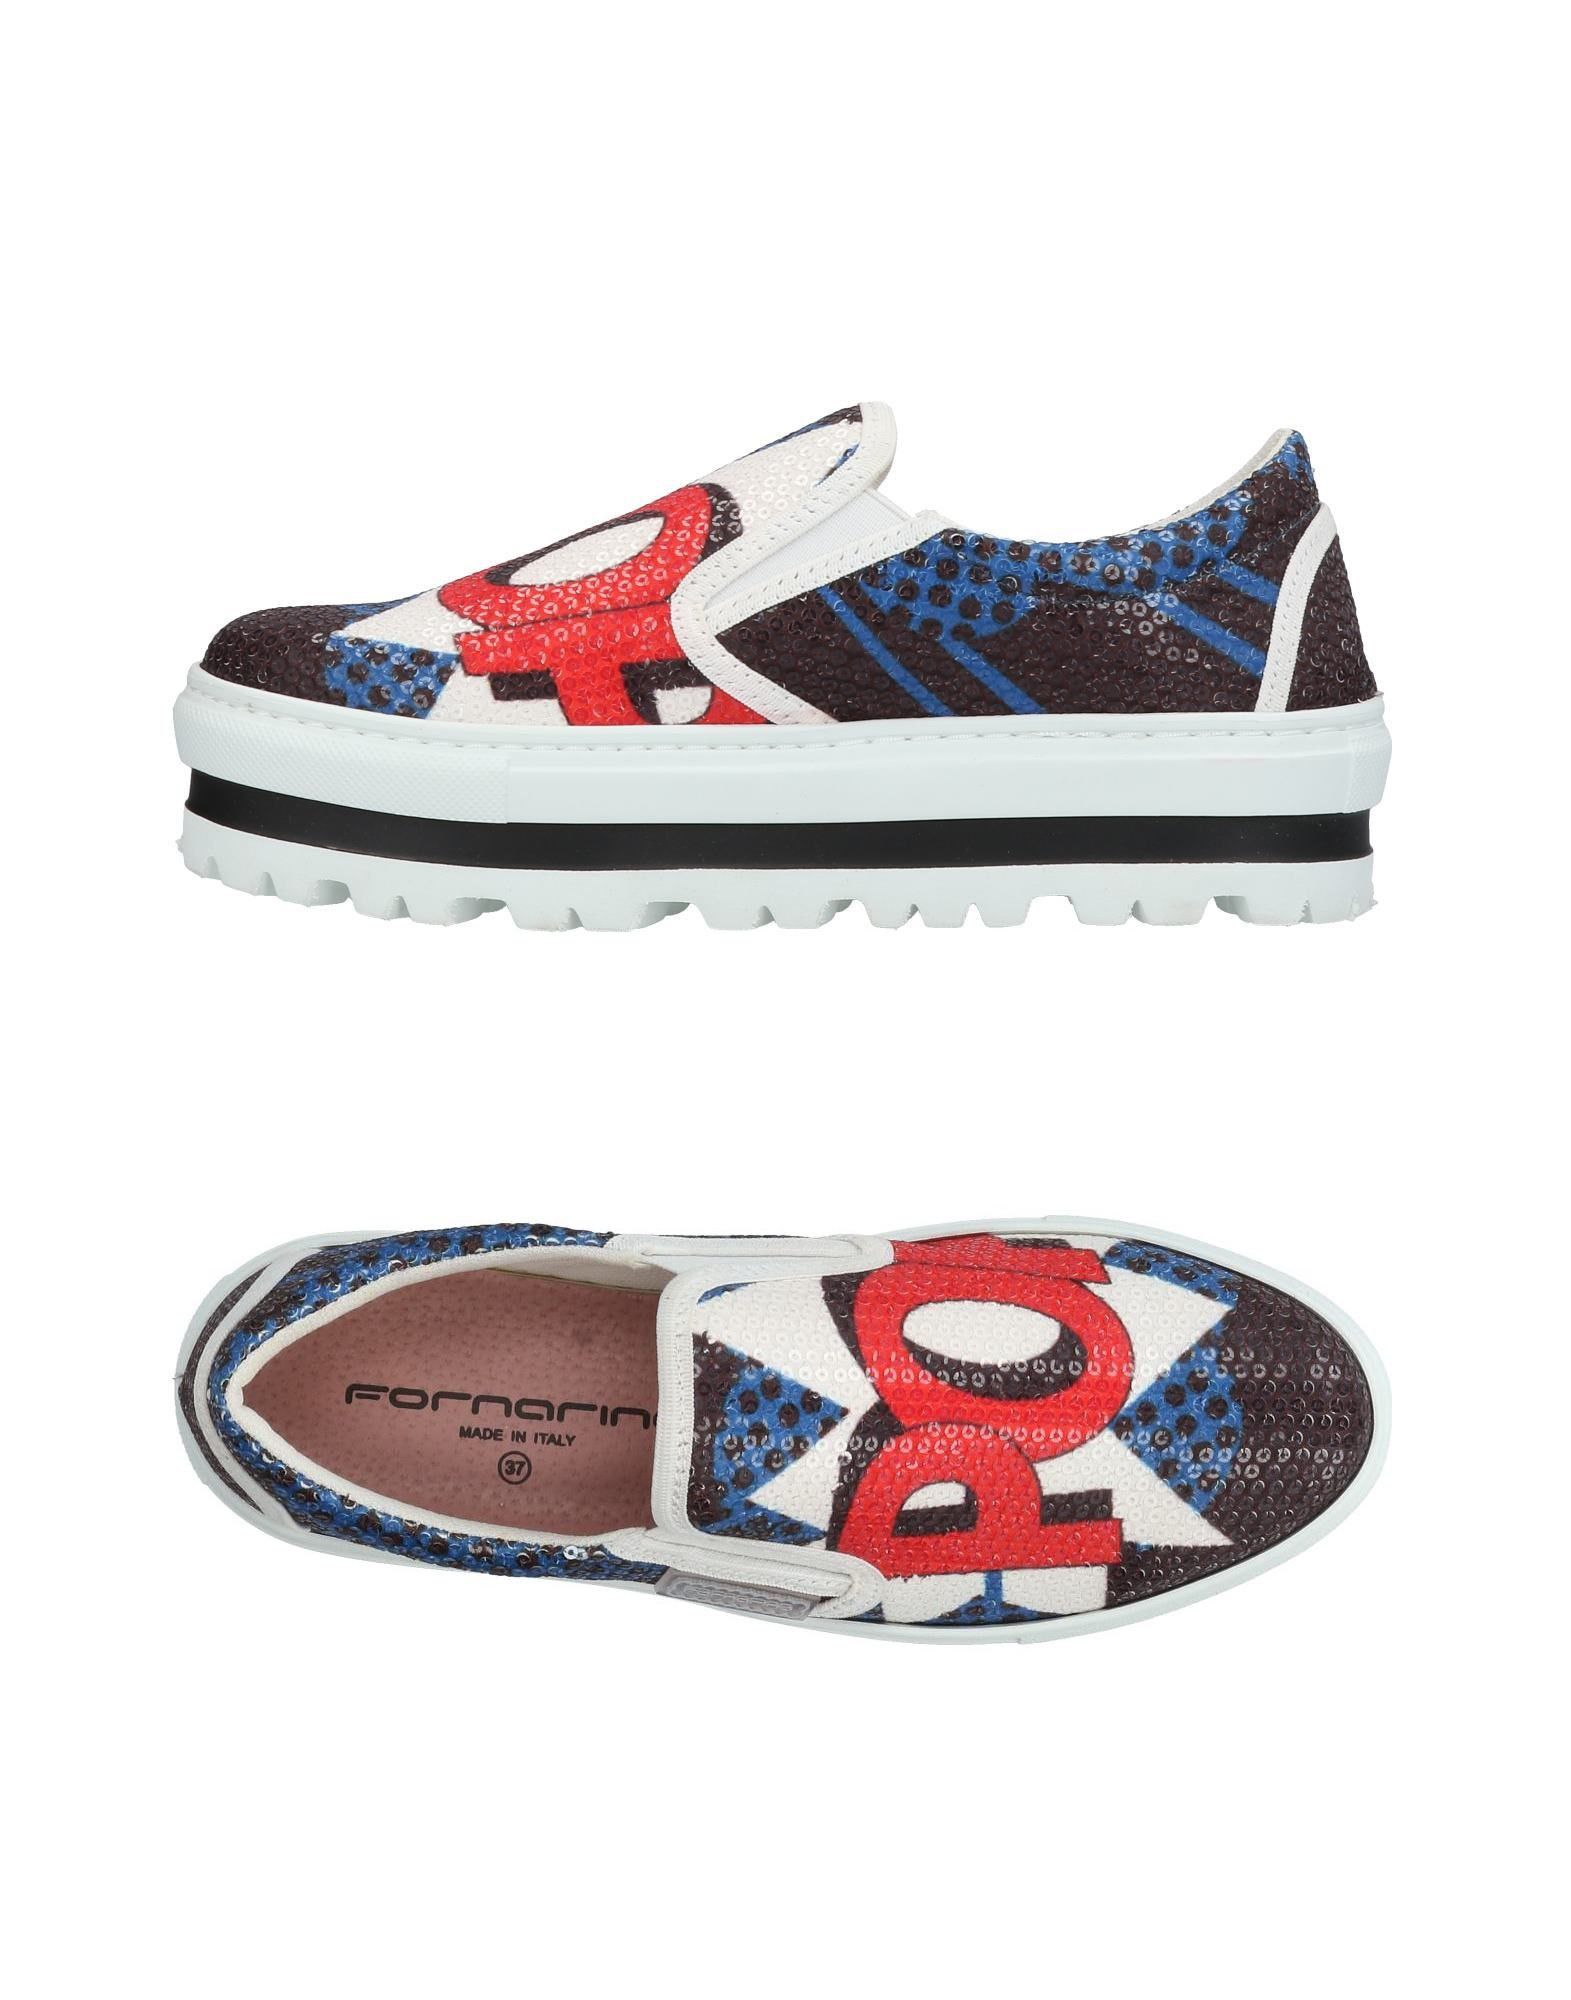 Sneakers Fornarina Femme - Sneakers Fornarina sur